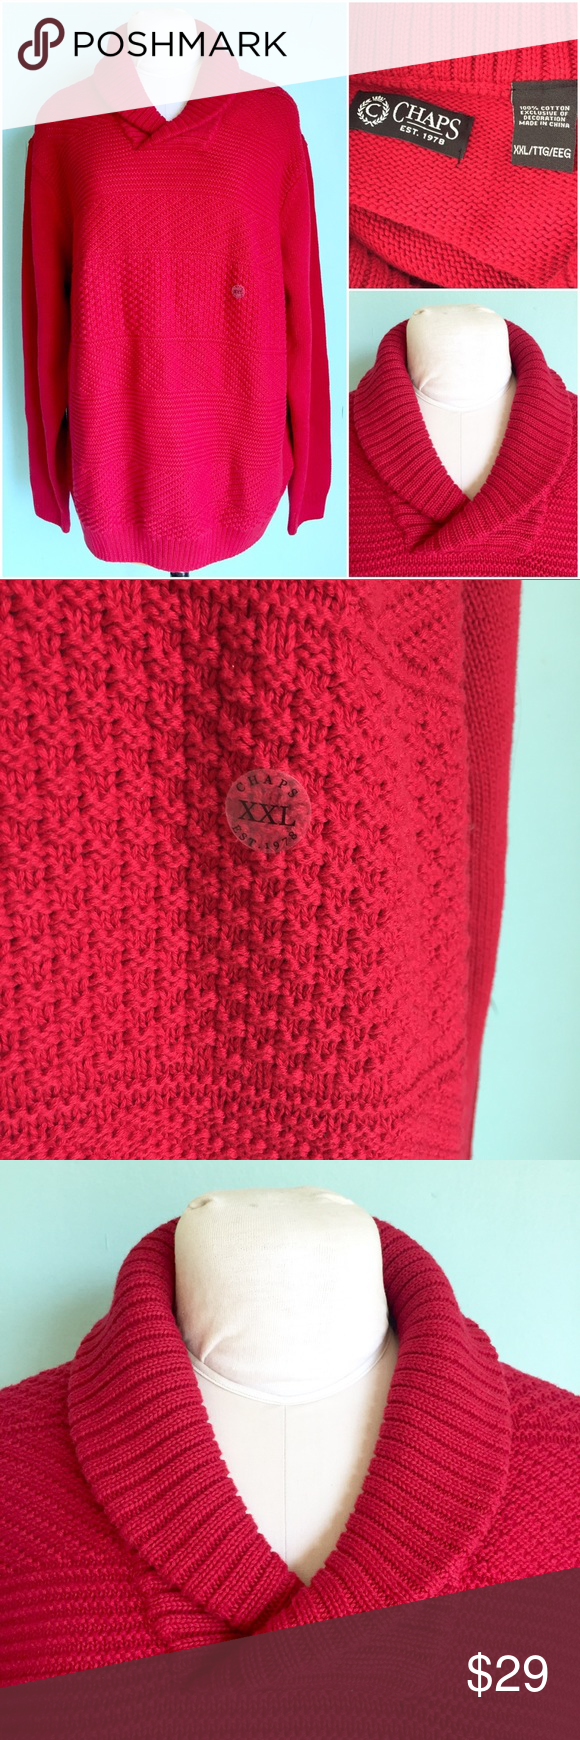 NWOT 100% Cotton Blood Red Cable Knit Sweater